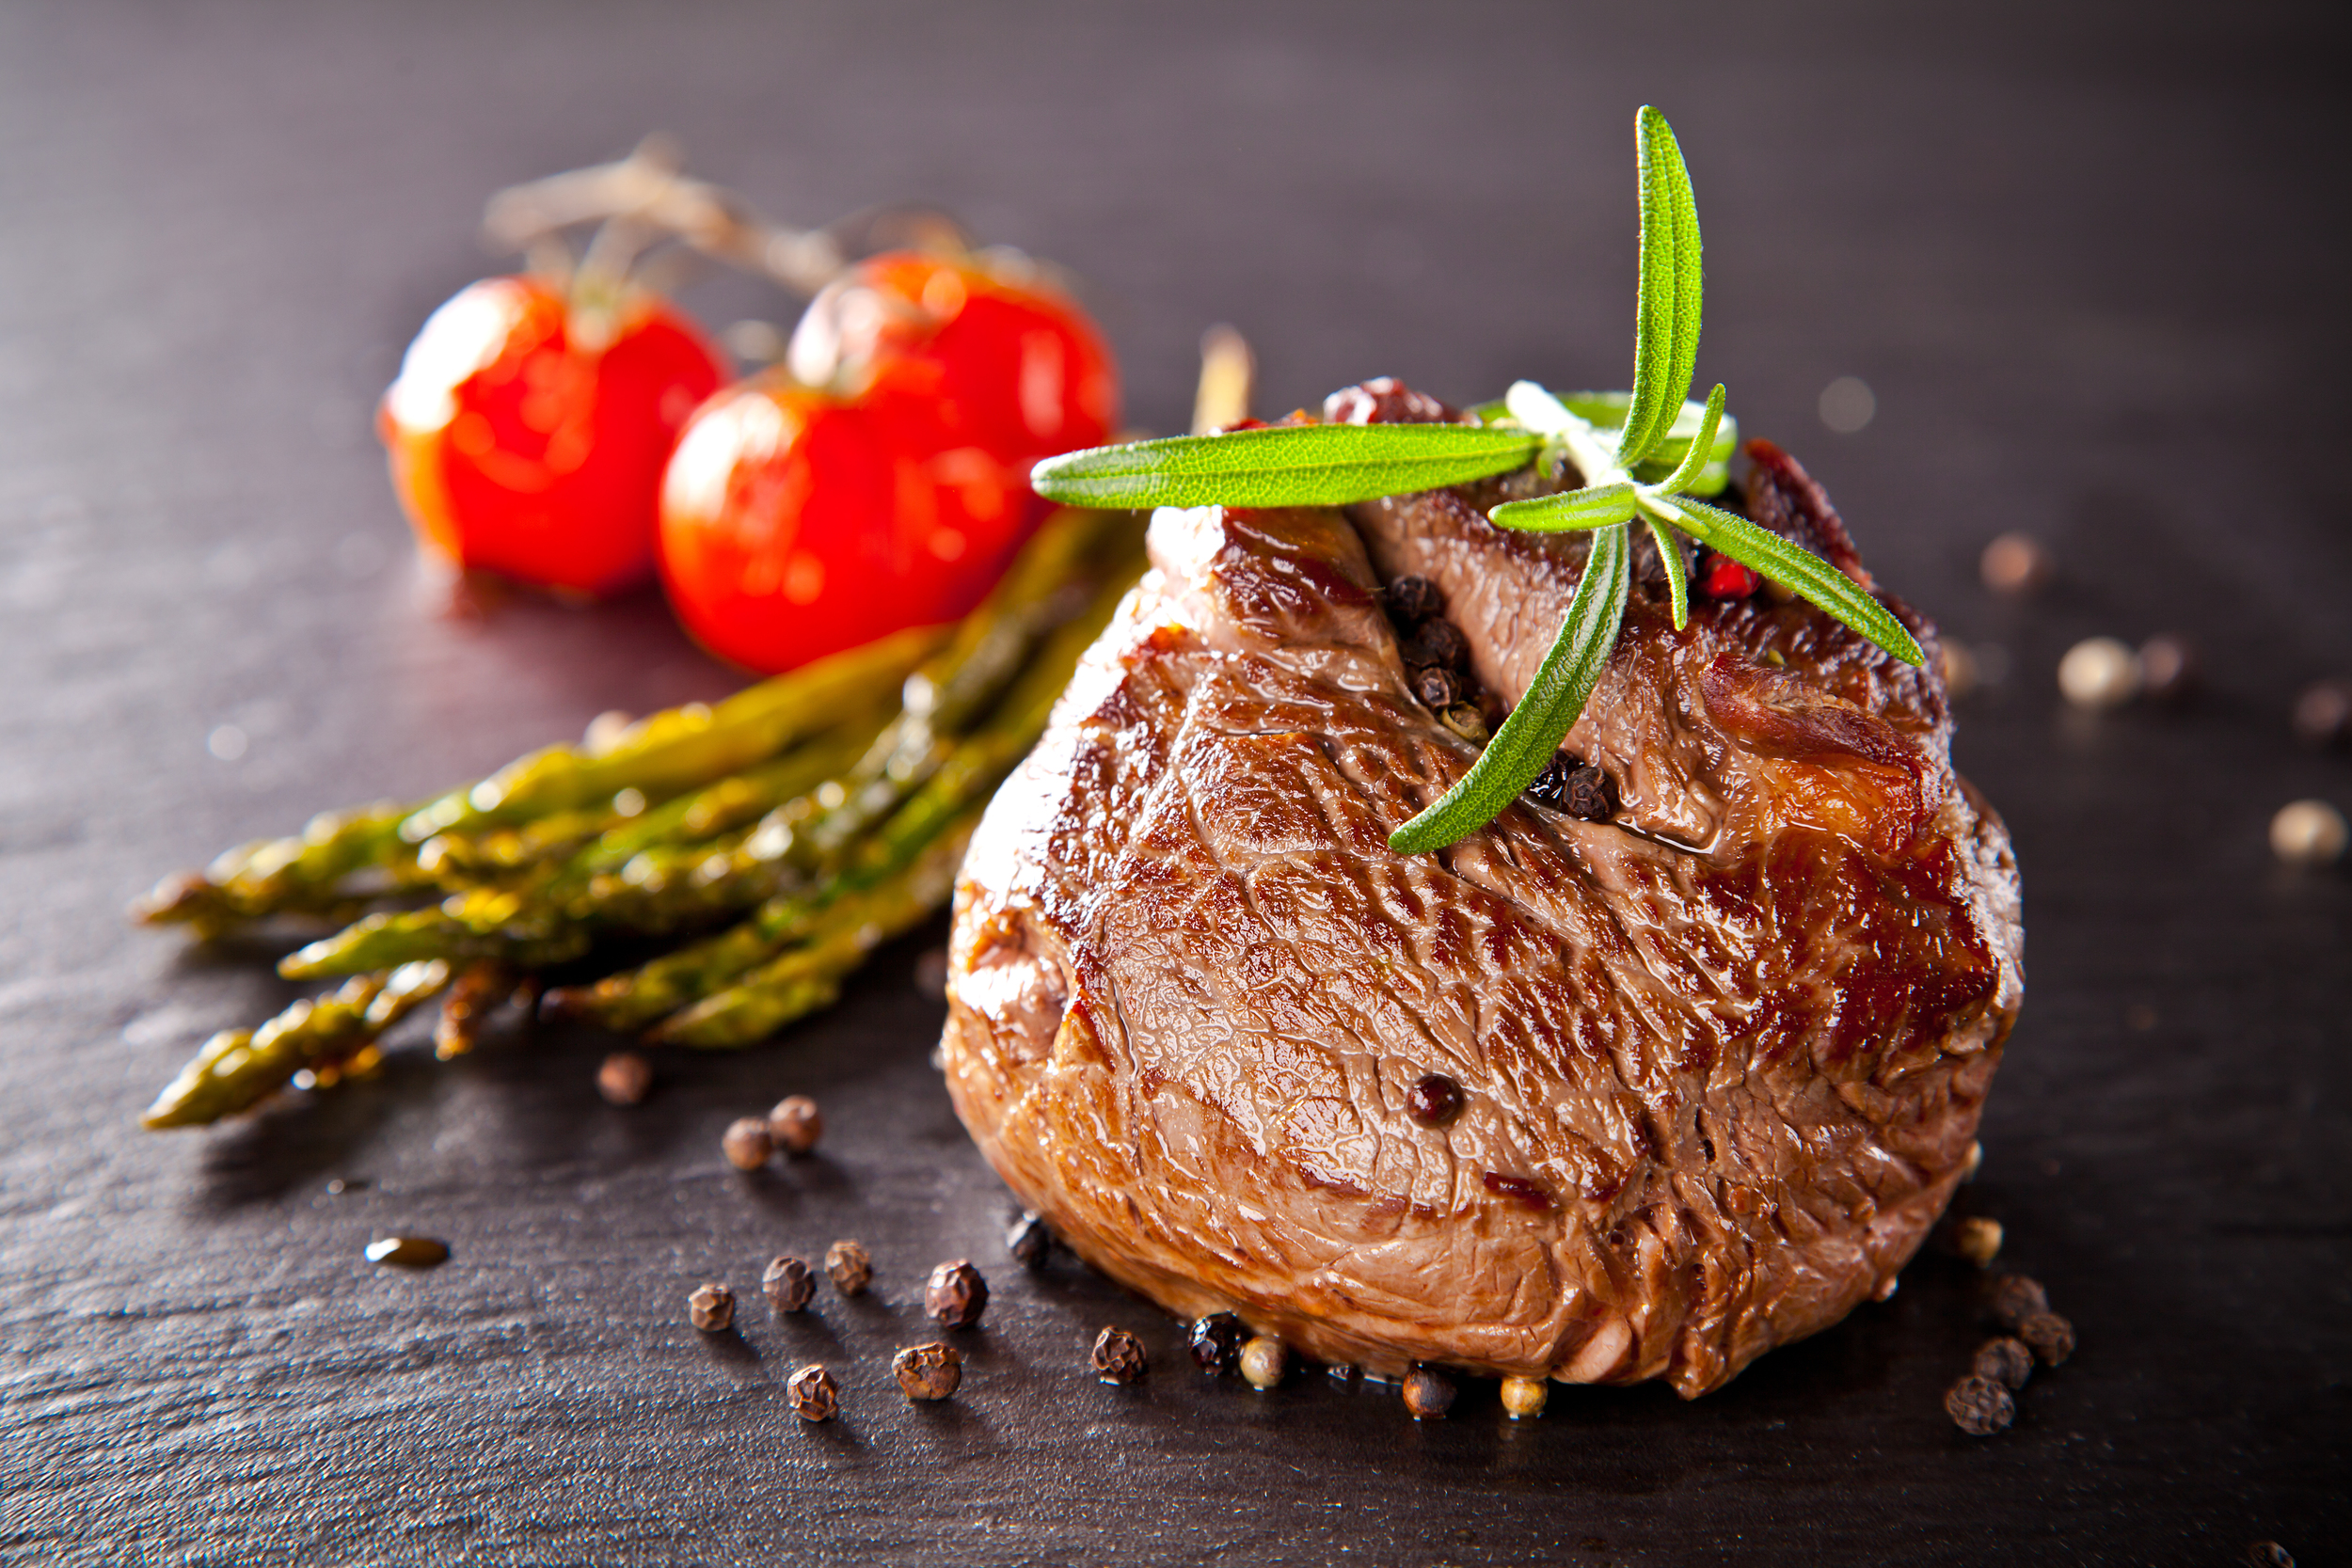 bigstock-Piece-of-red-meat-steak-with-v-60619094.jpg